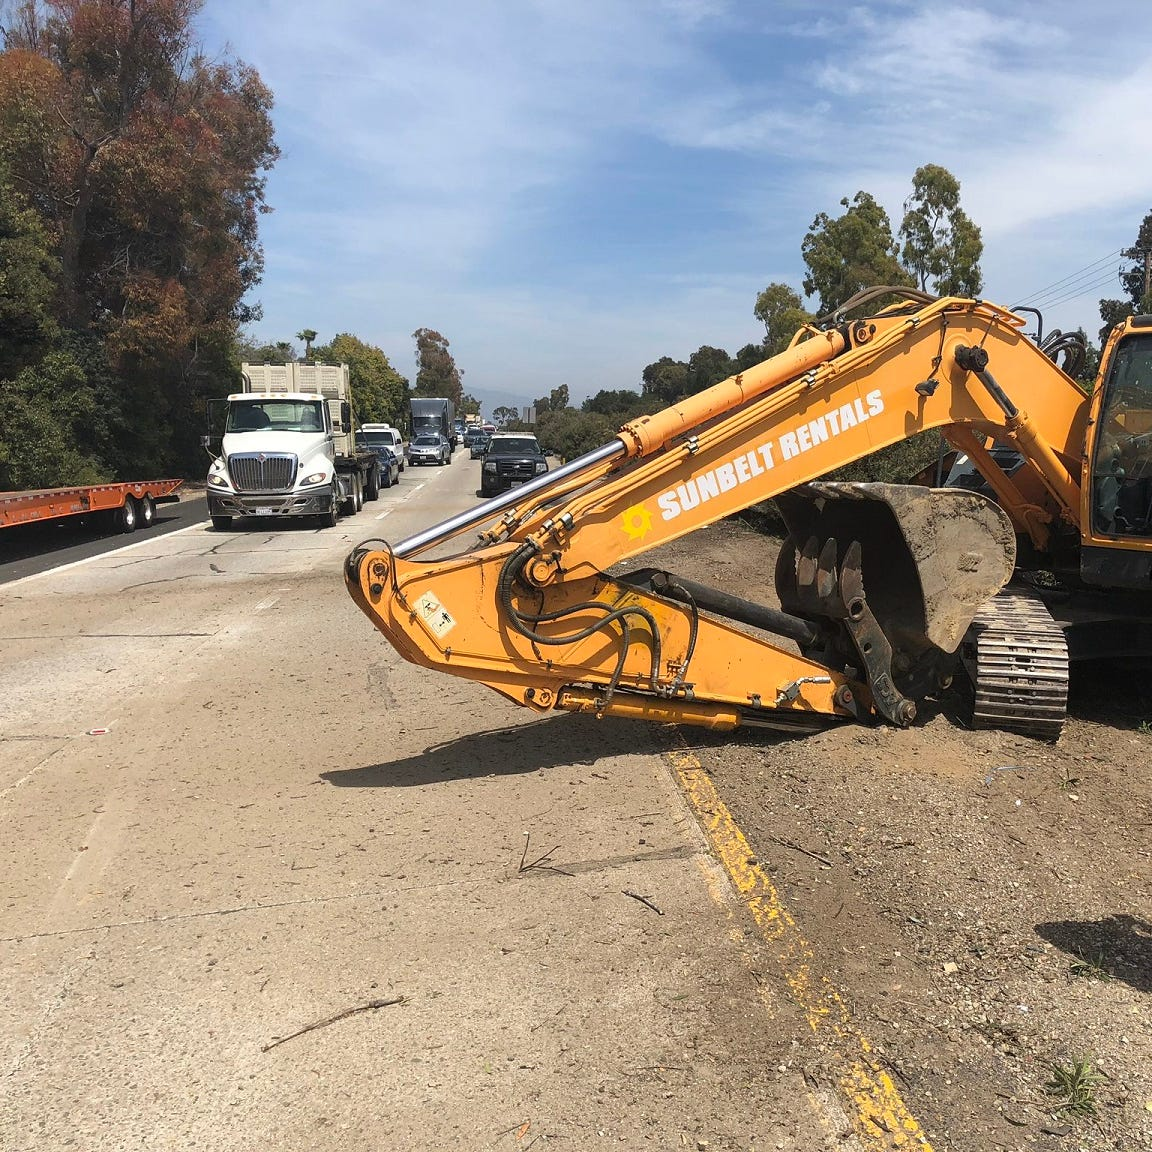 Lanes reopen on westbound Highway 126 in Ventura after big rig loses load